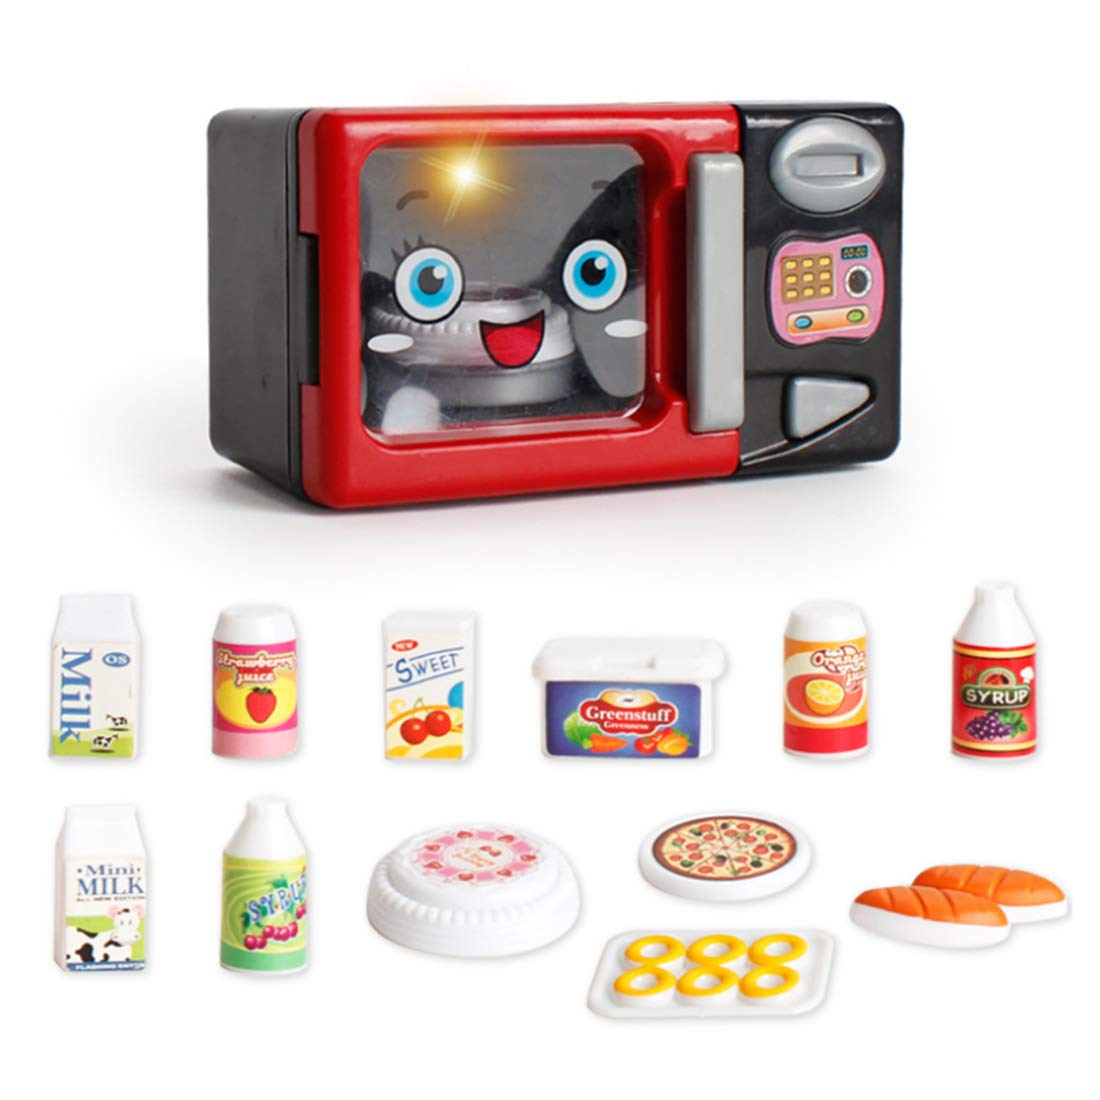 HMANE Kitchen Household Pretend Play Toys Kit Simulation Appliances Educational Toys for Kids Toddlers - (Microwave Oven)